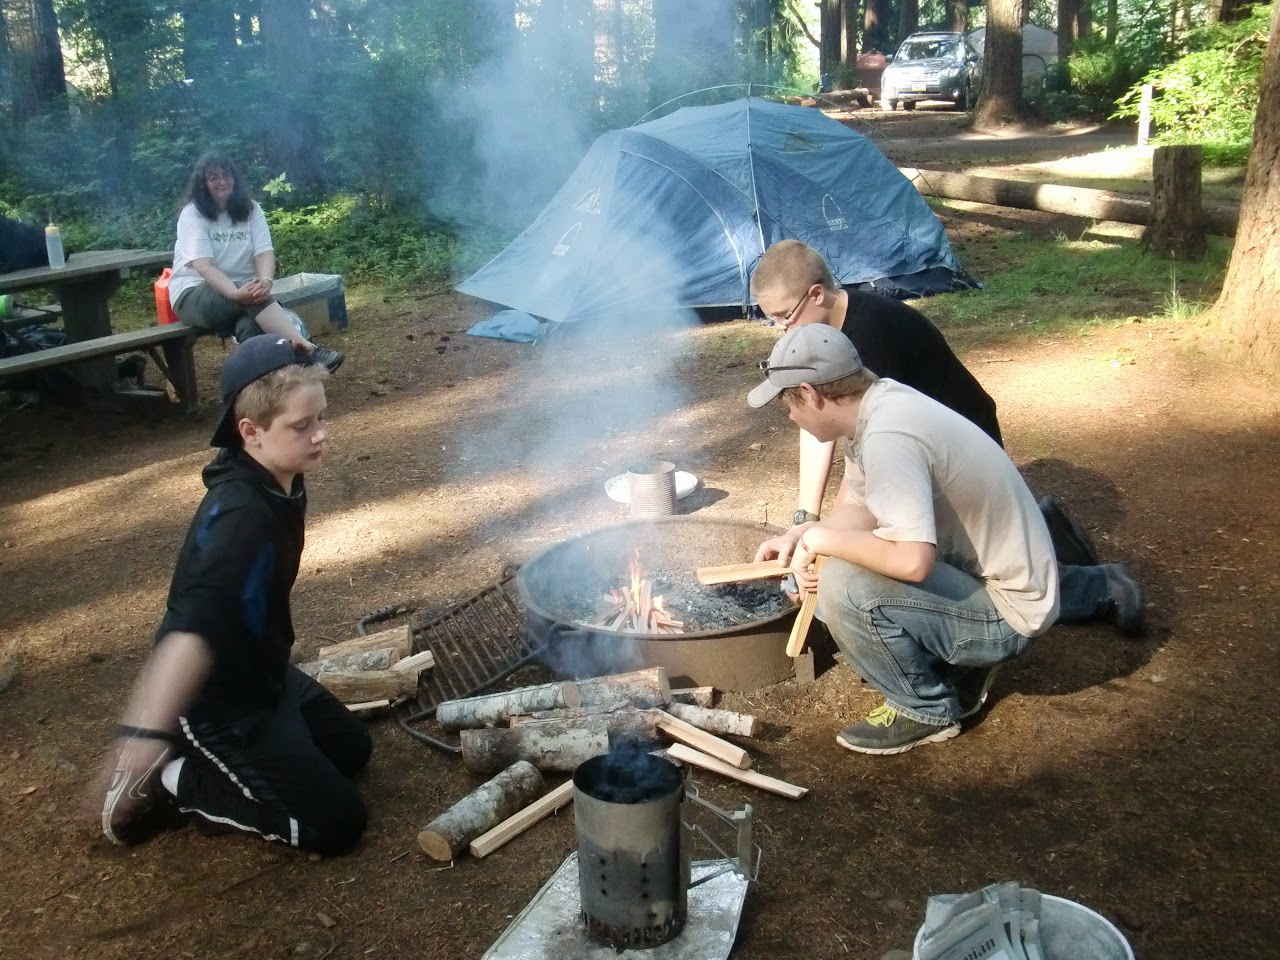 Camp at Millersylvania